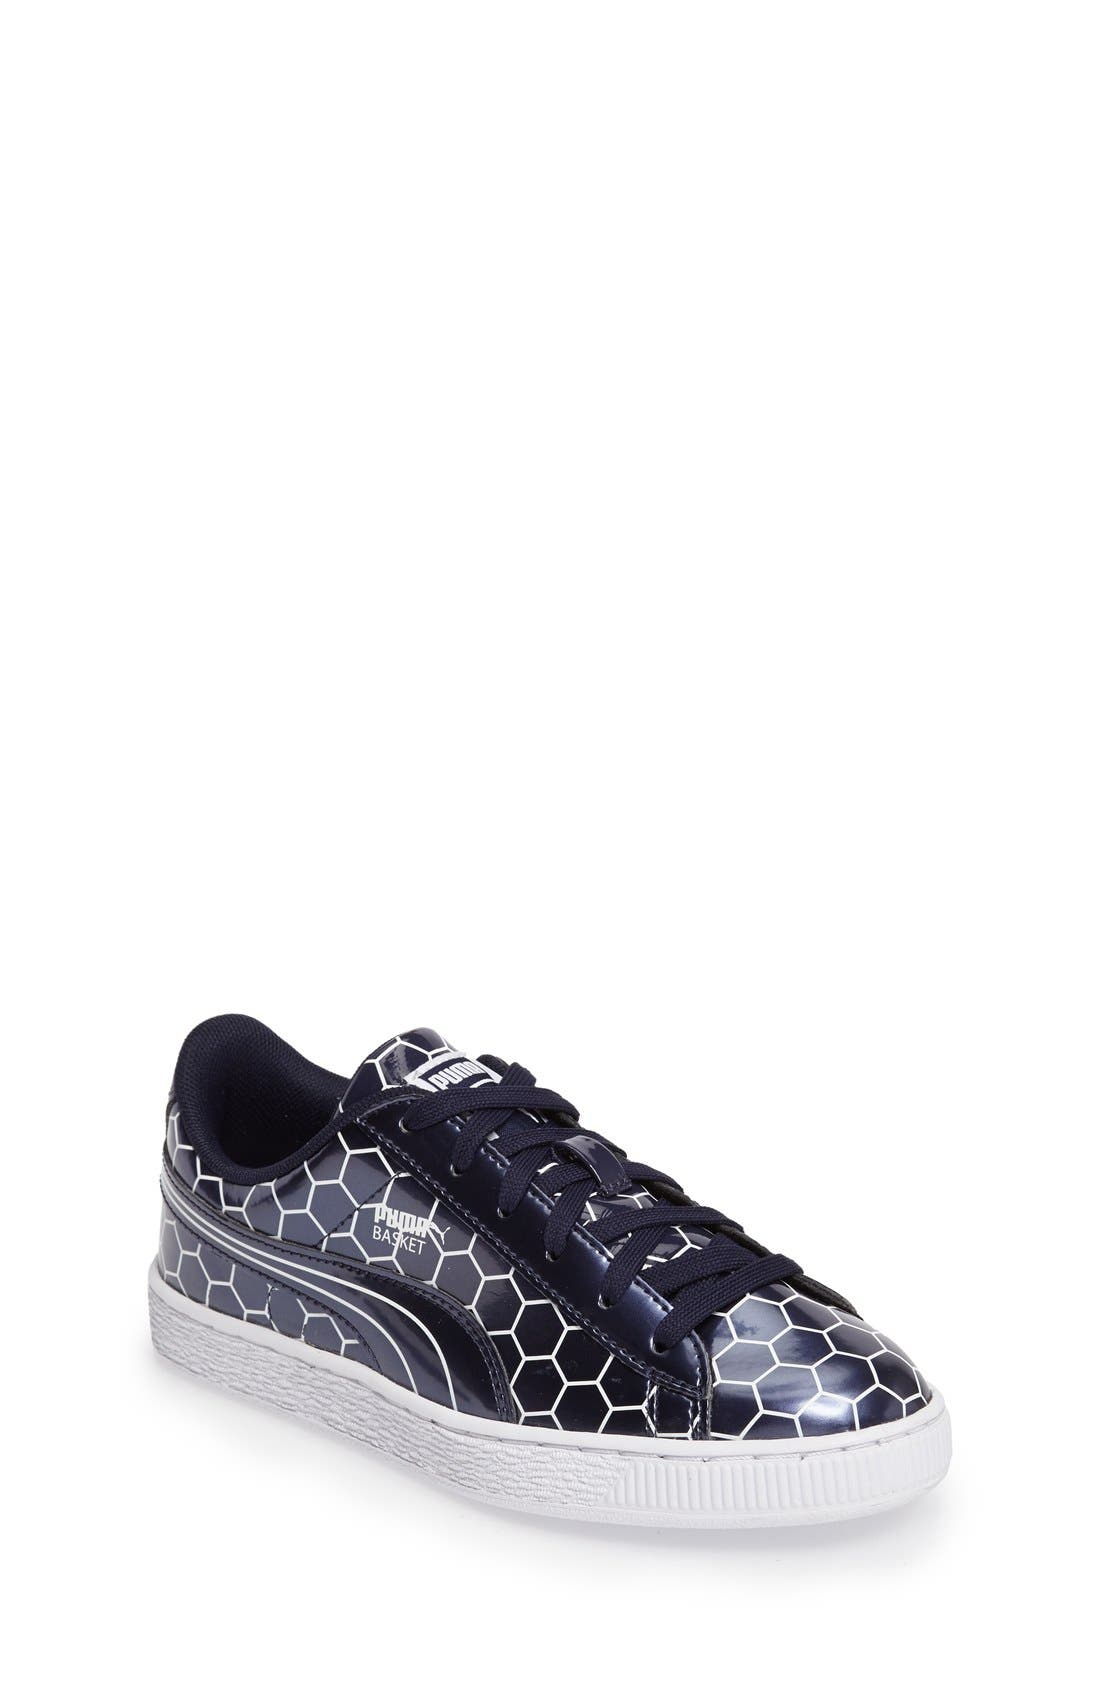 Basket Classic Ano Sneaker,                         Main,                         color,